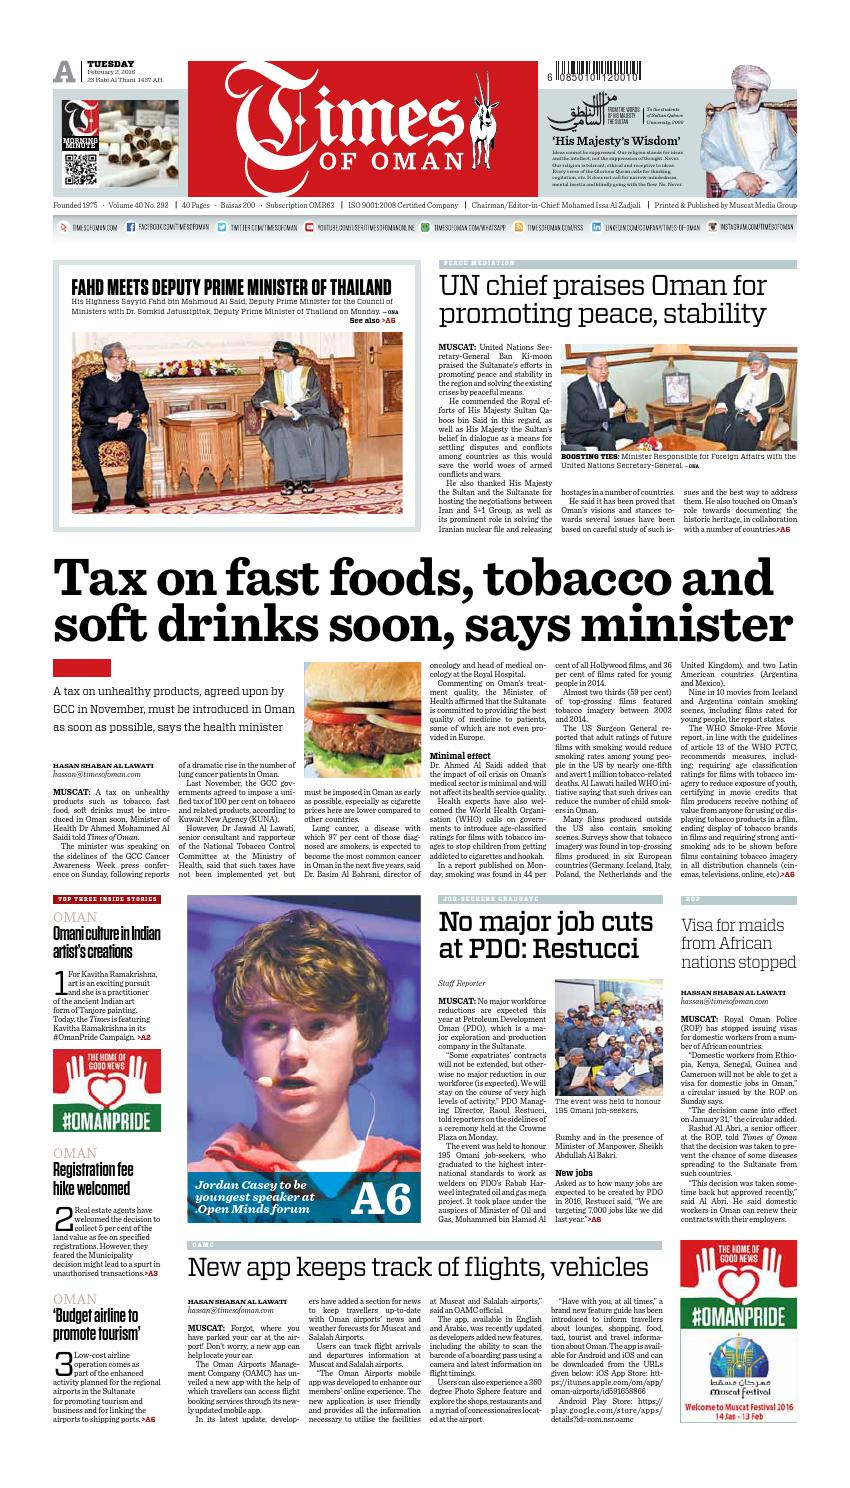 Times of Oman - February 2, 2016 by Muscat Media Group - issuu